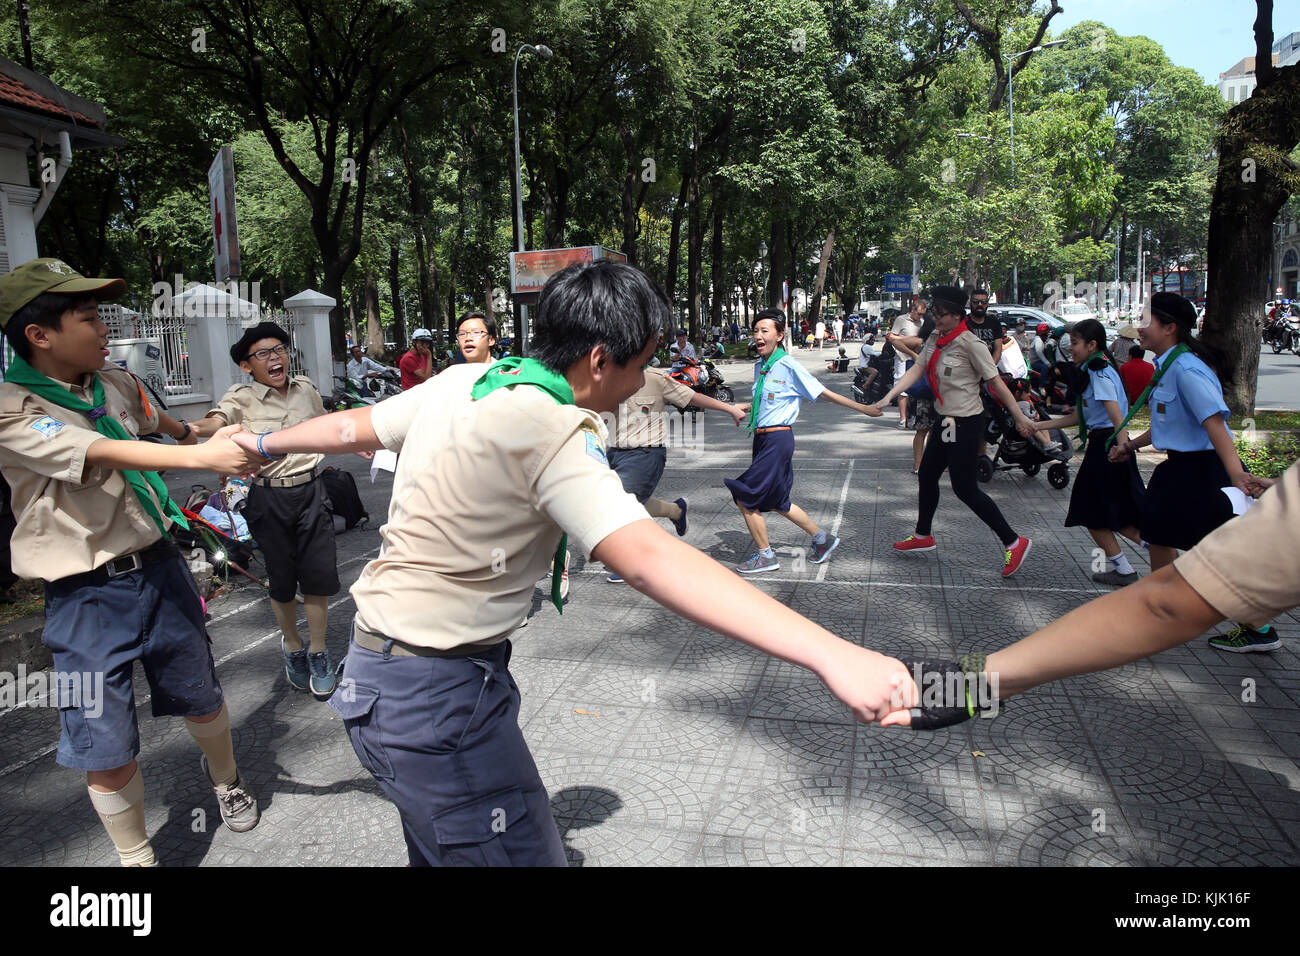 Vietnamese scout troup dancing in the street.  Ho Chi Minh City.  Vietnam. - Stock Image